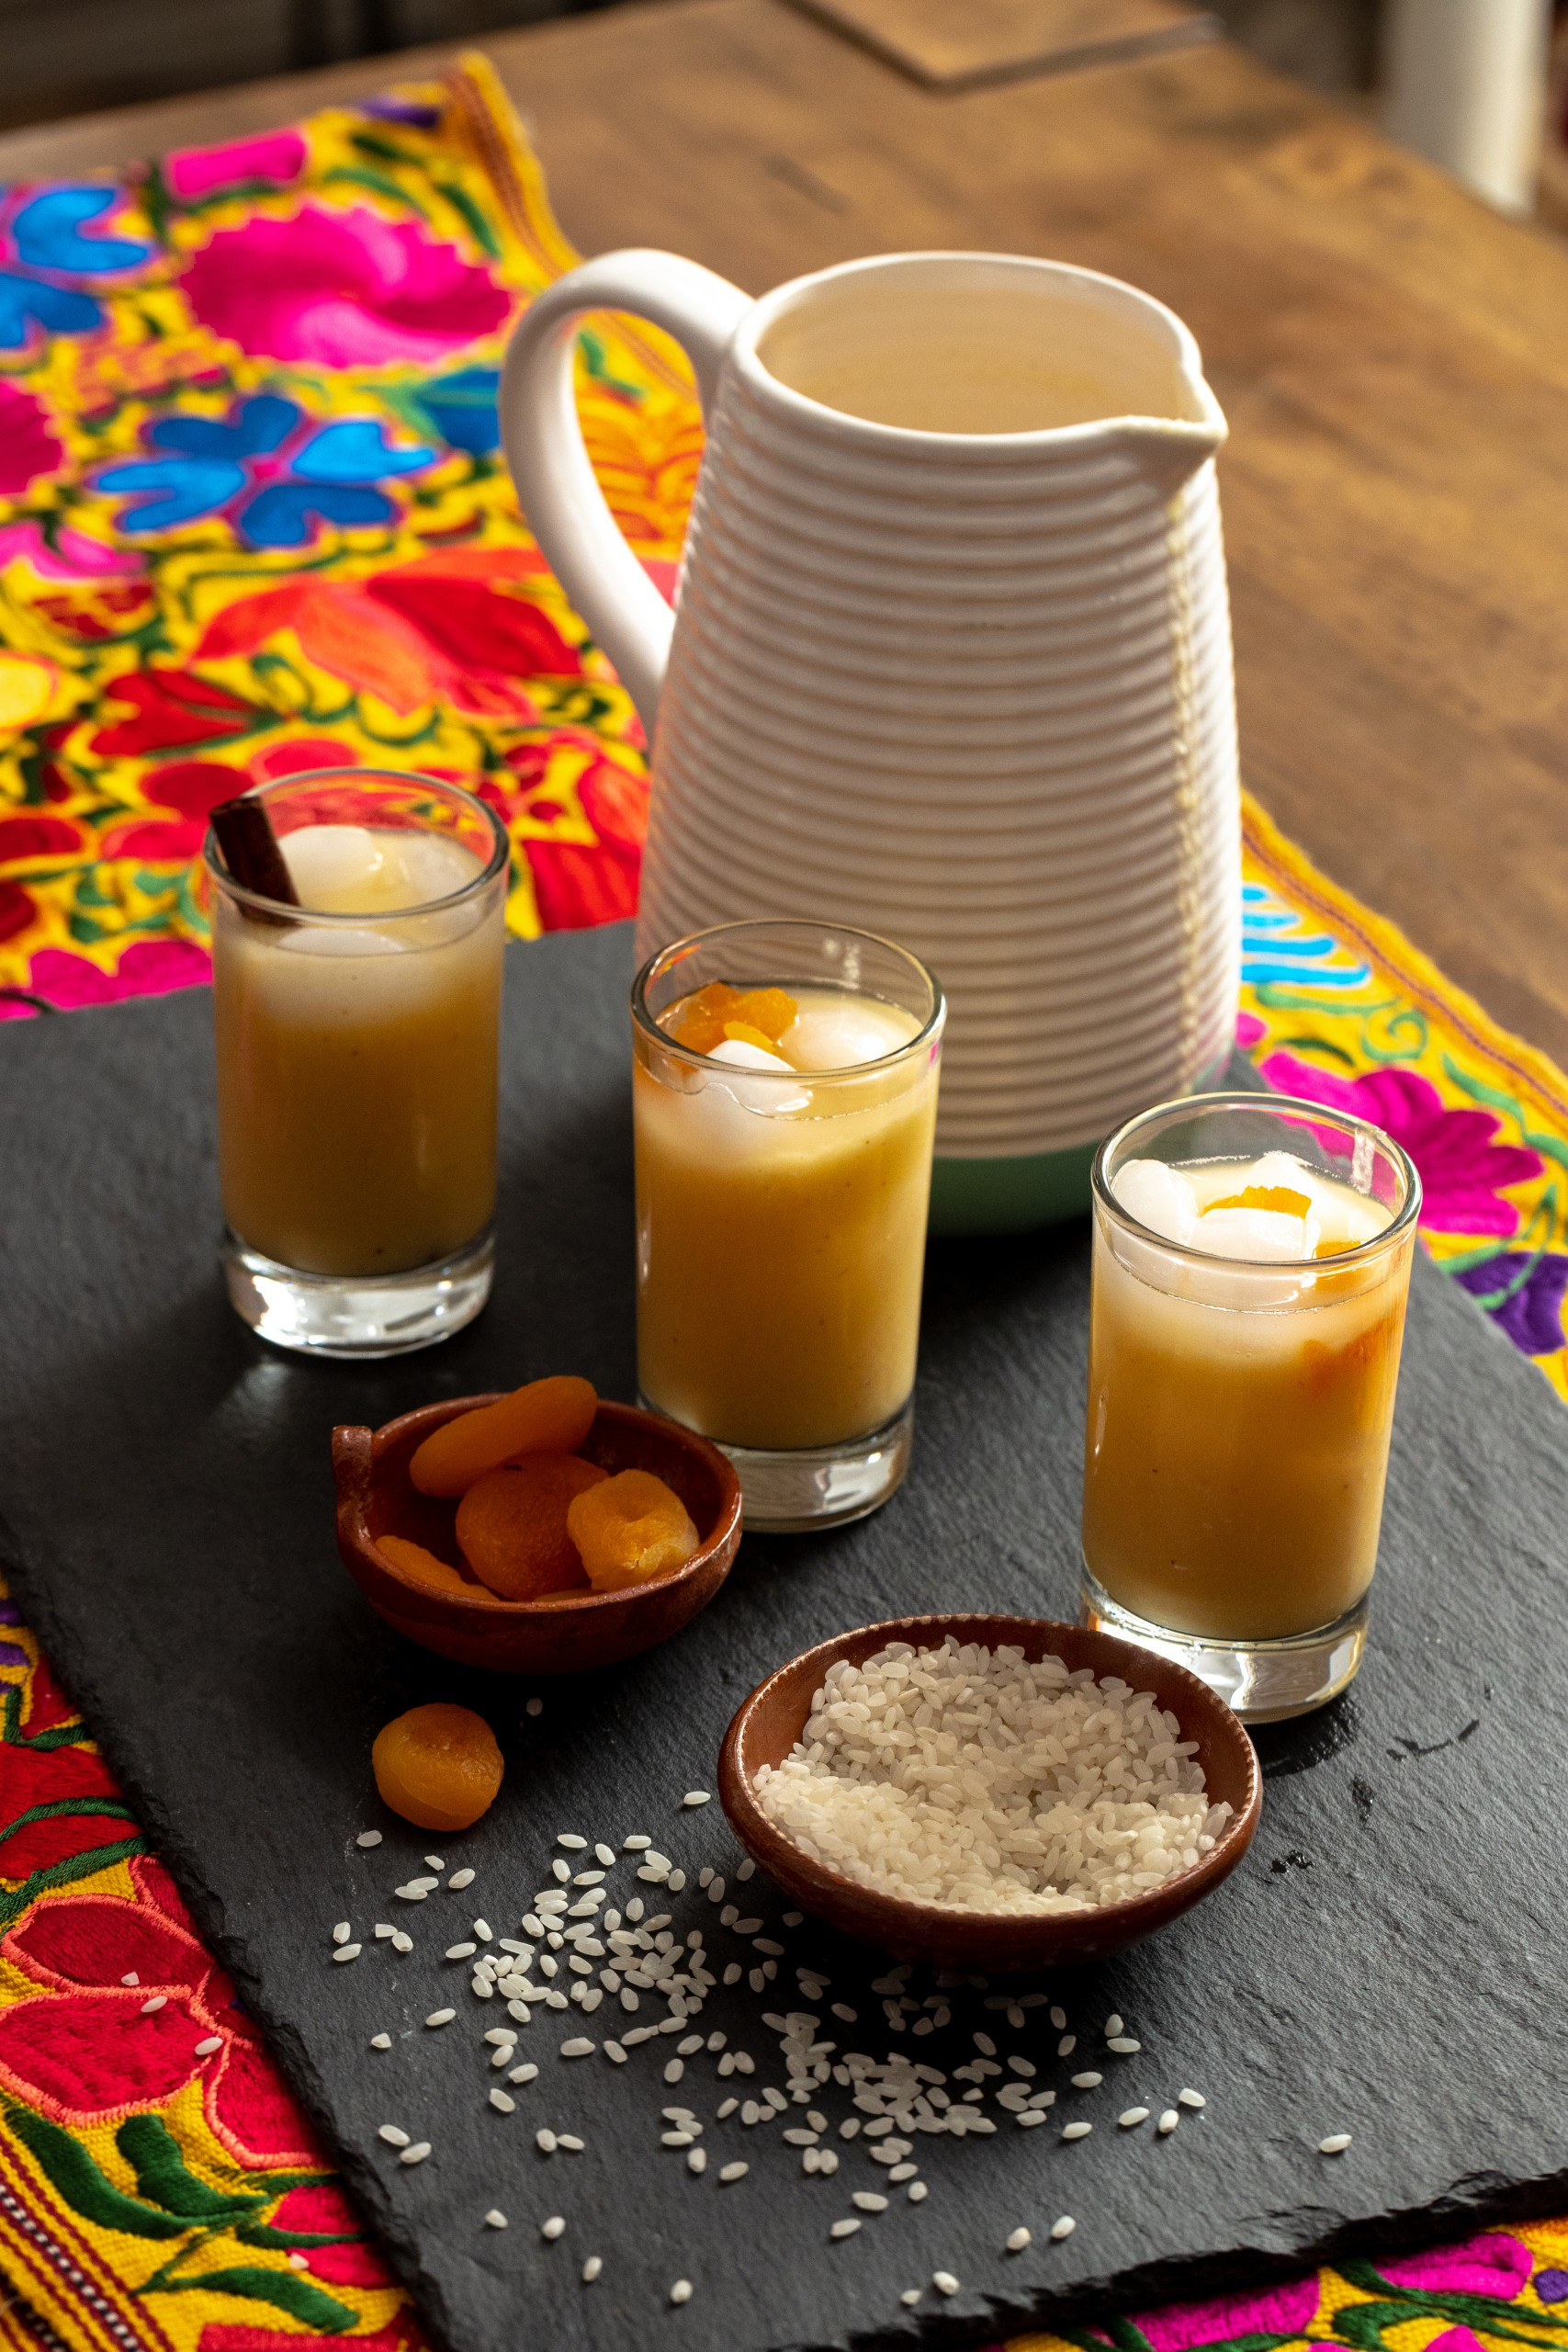 apricot horchata made with dried apricots